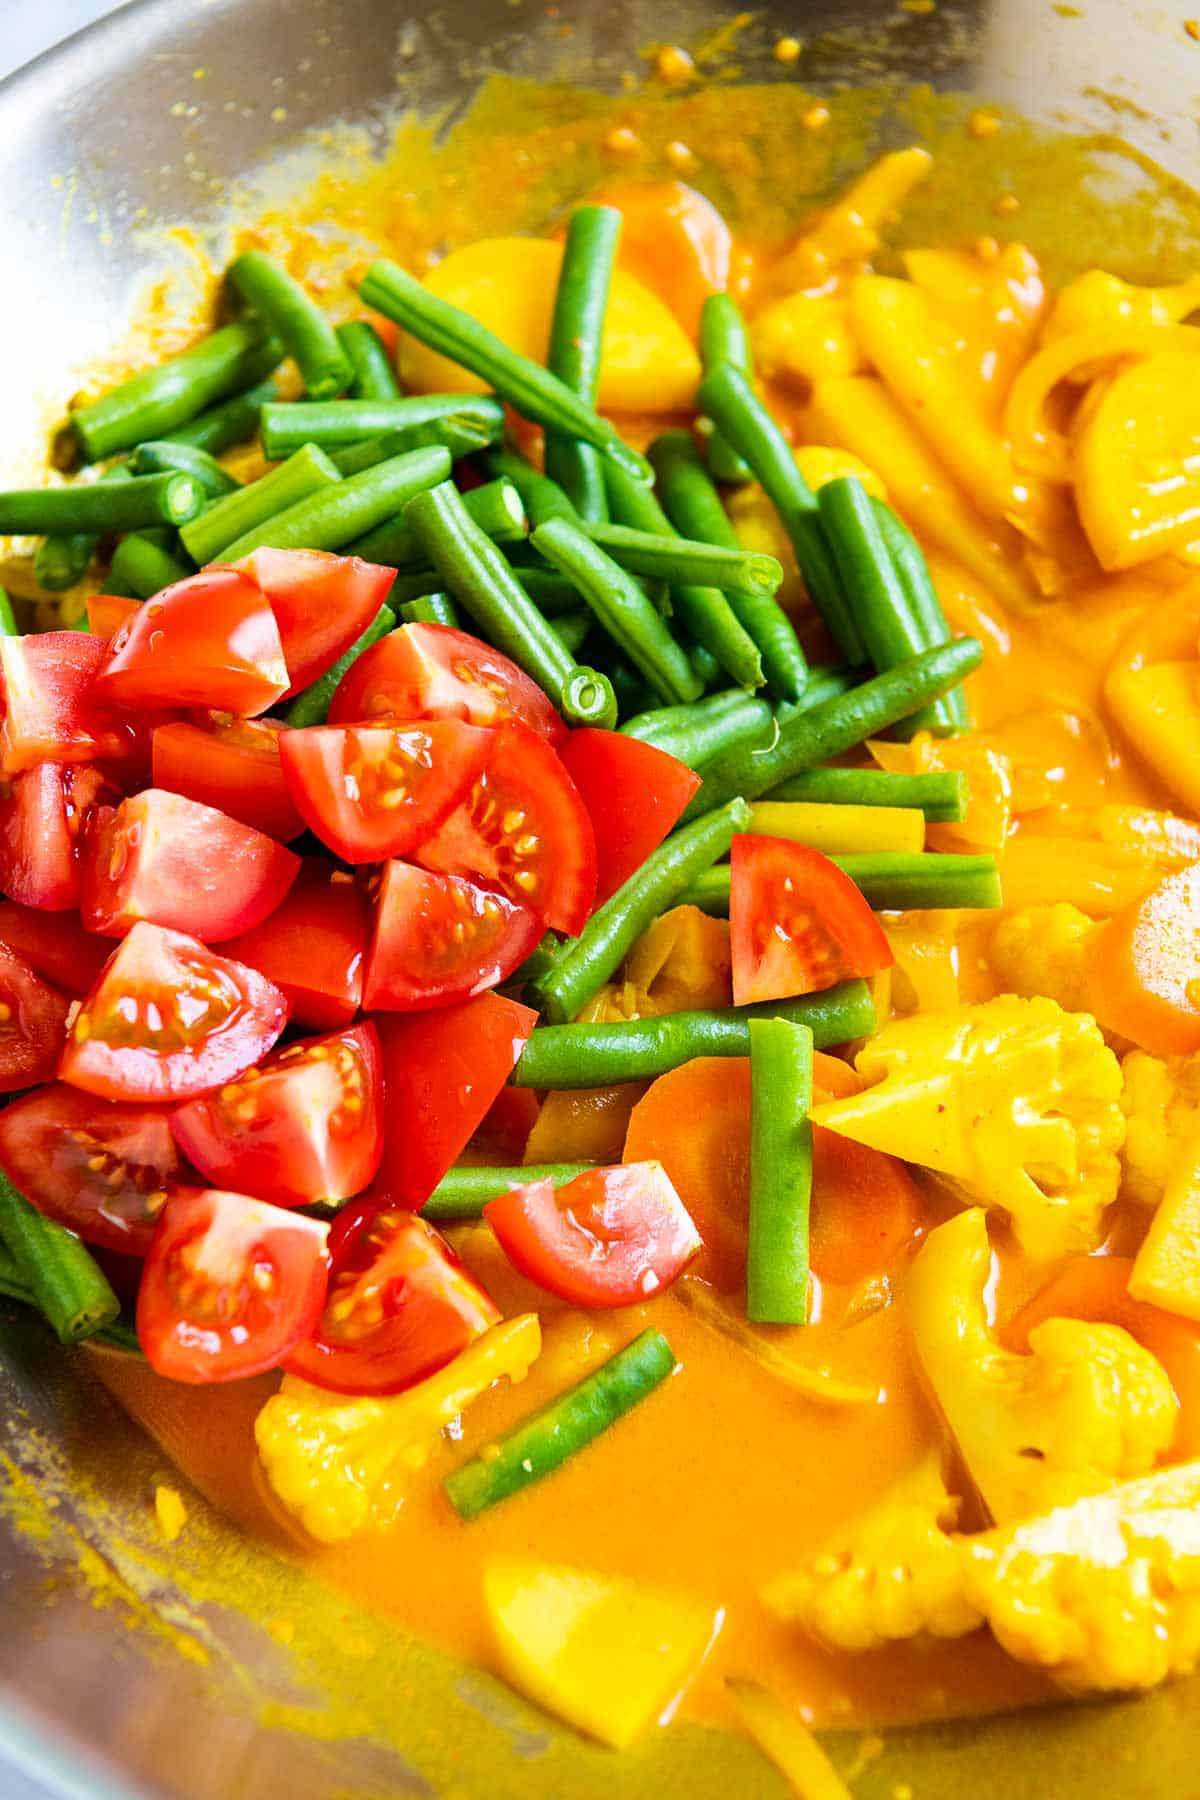 Making vegetable curry